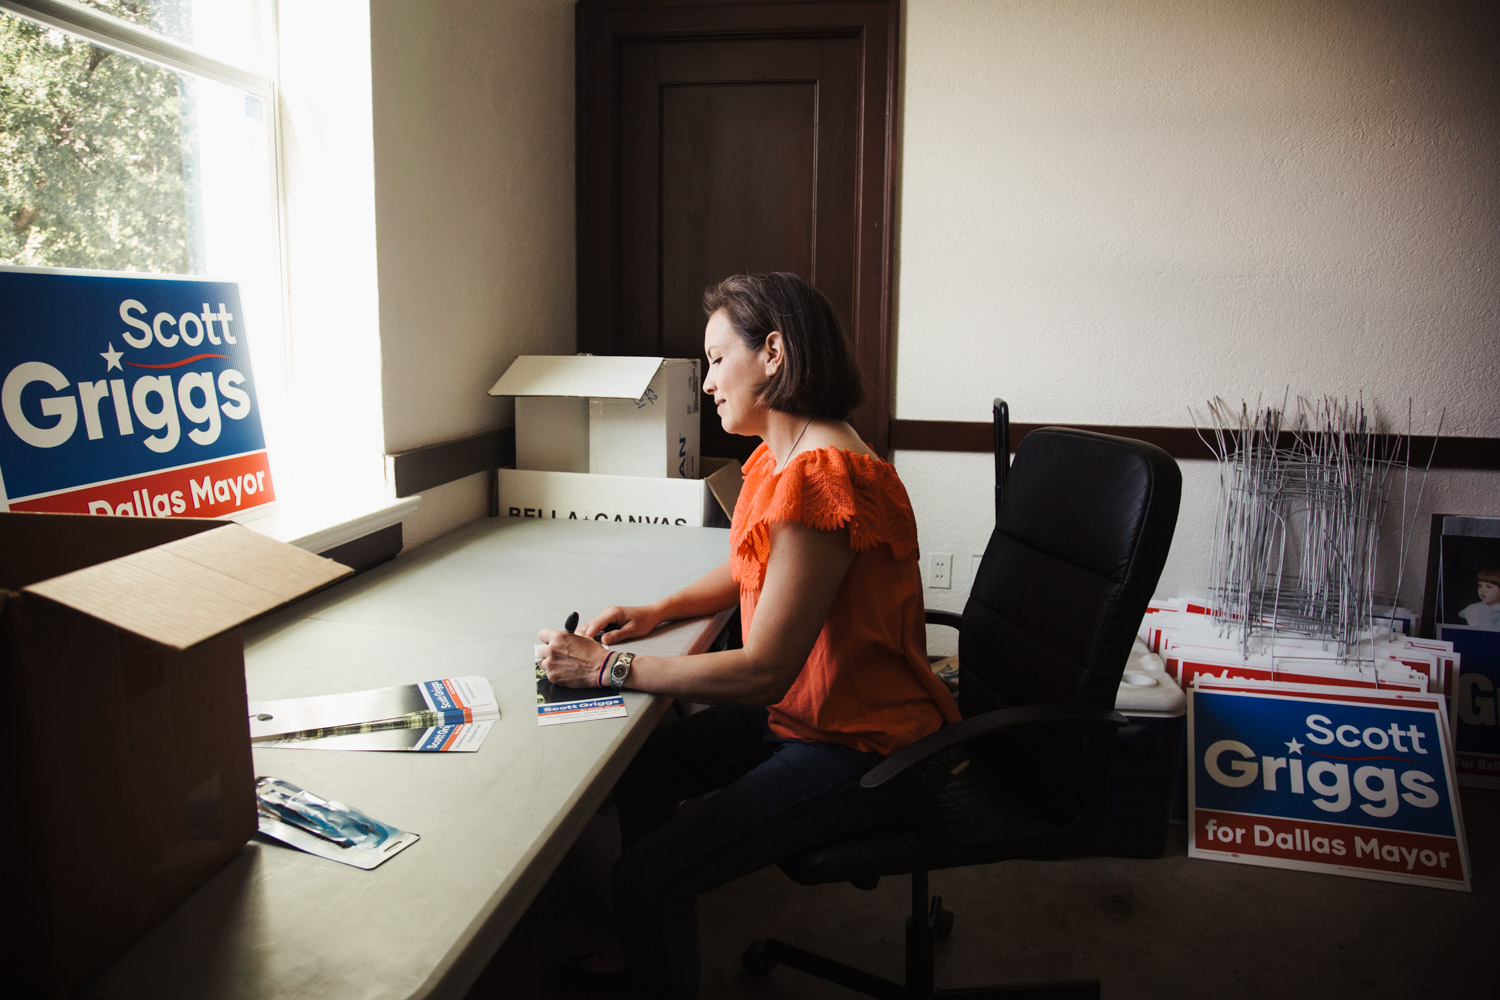 Pictured above: Mariana working at one of the desks in the campaign office.